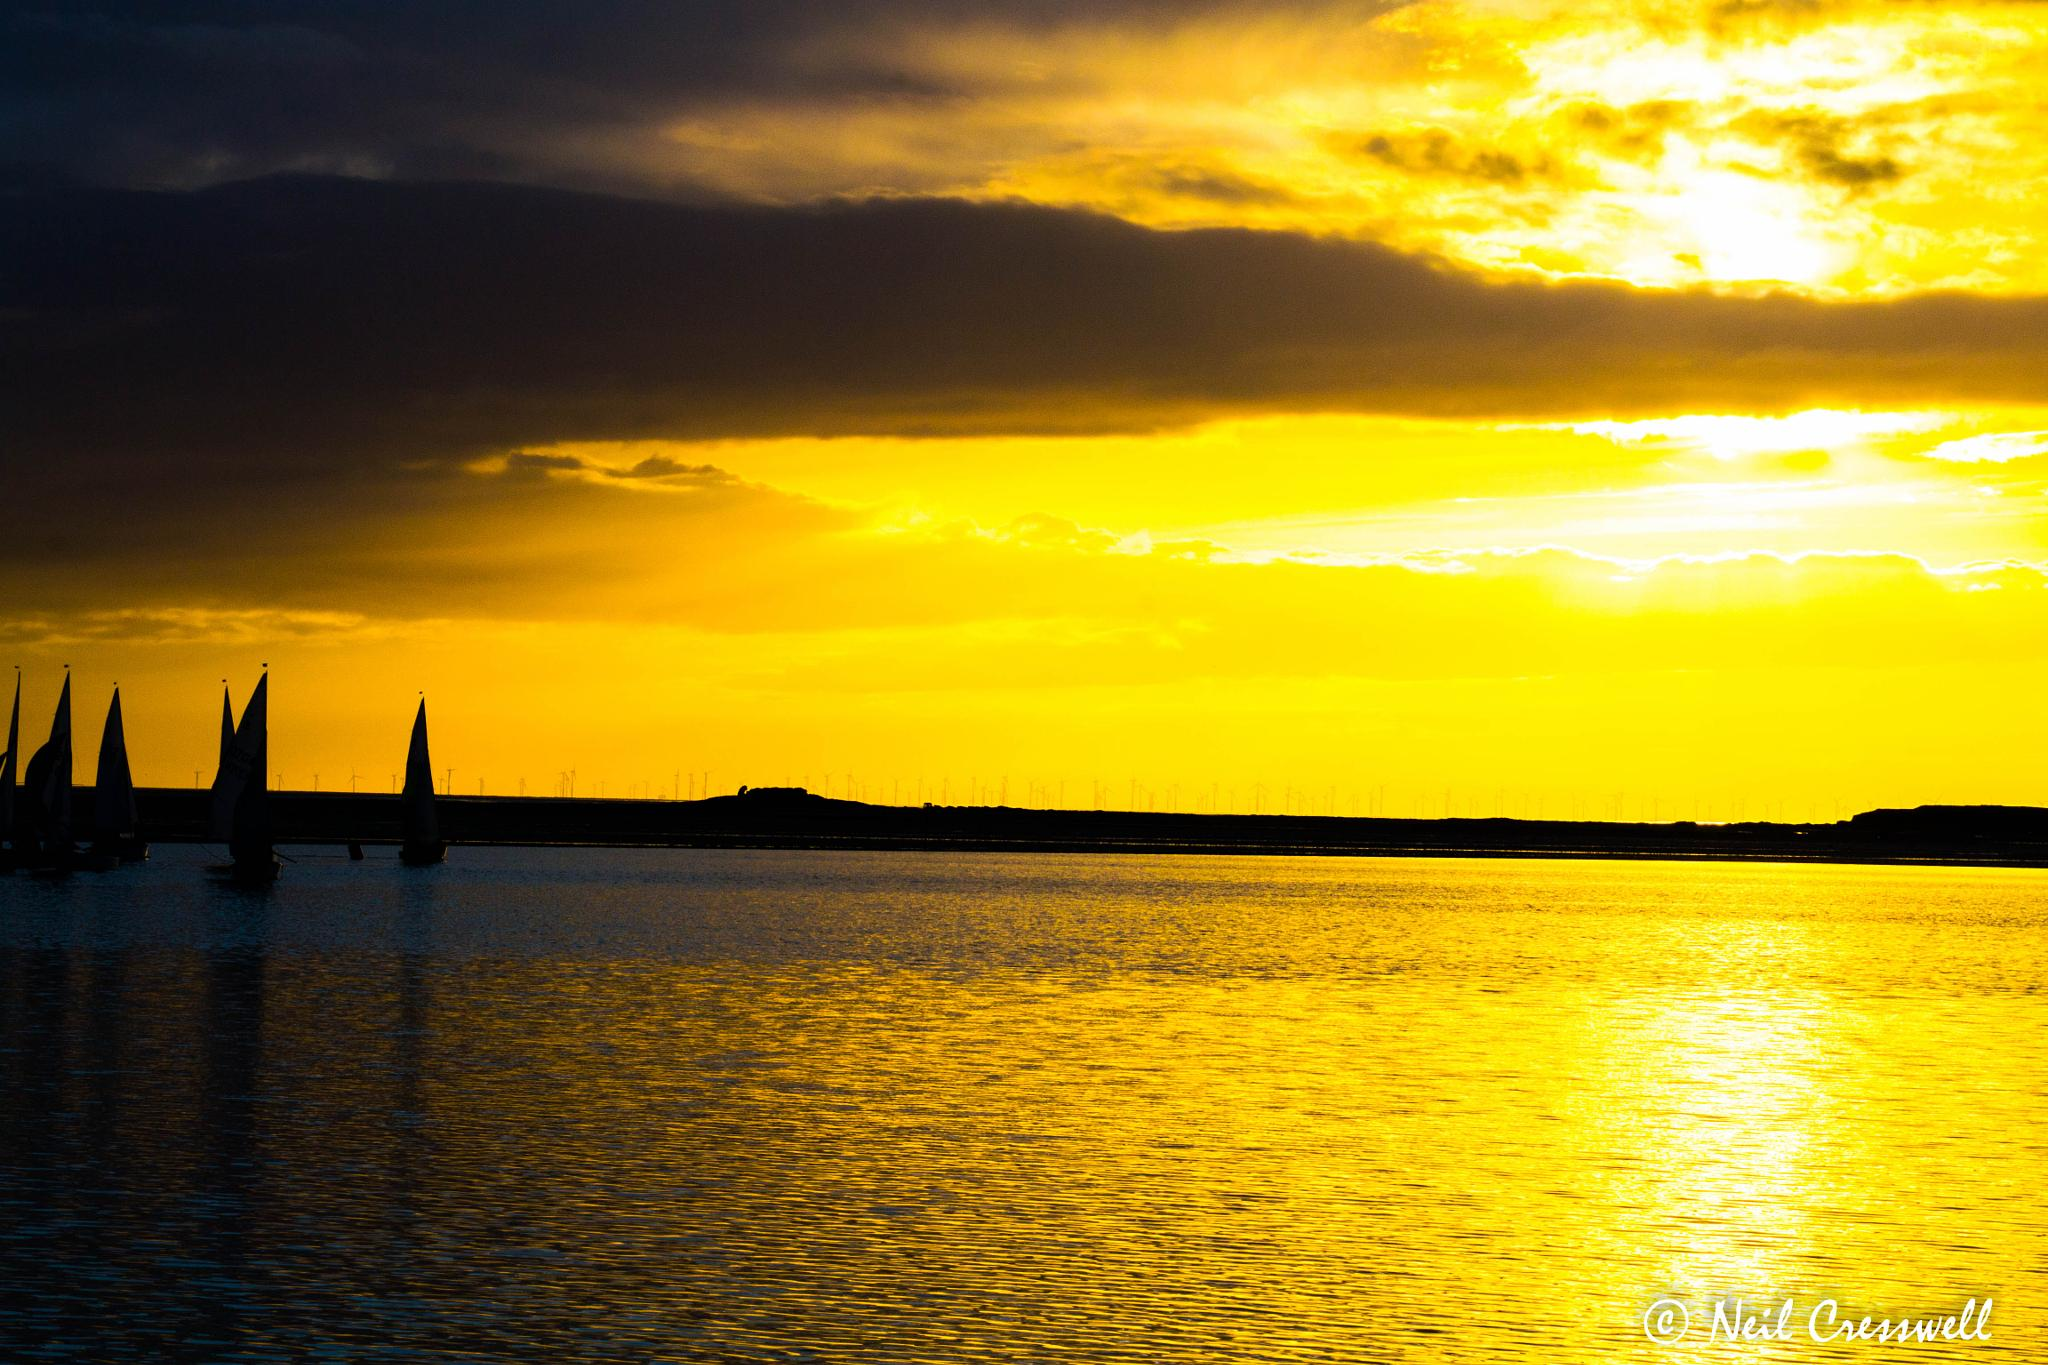 West Kirby sunset by Neil Cresswell